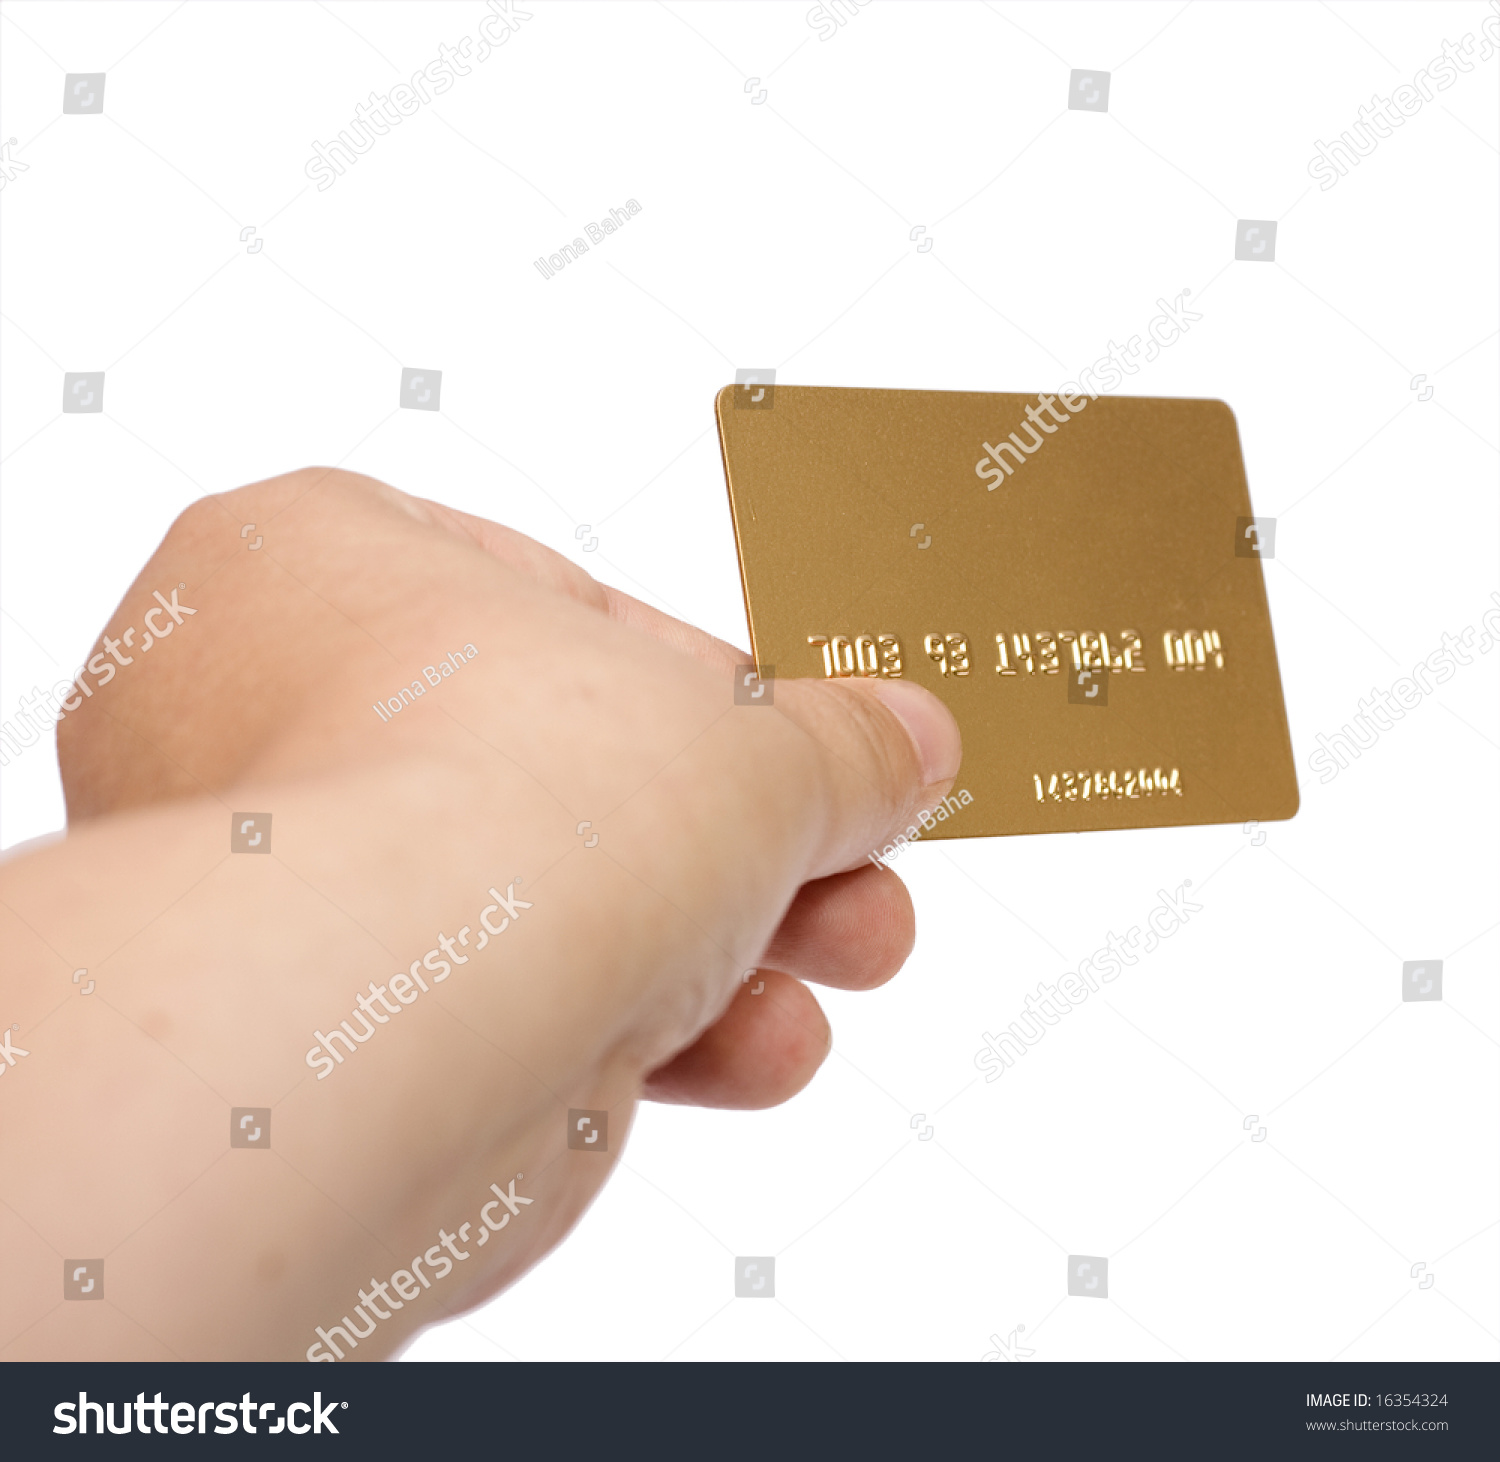 how to buy stocks with credit card